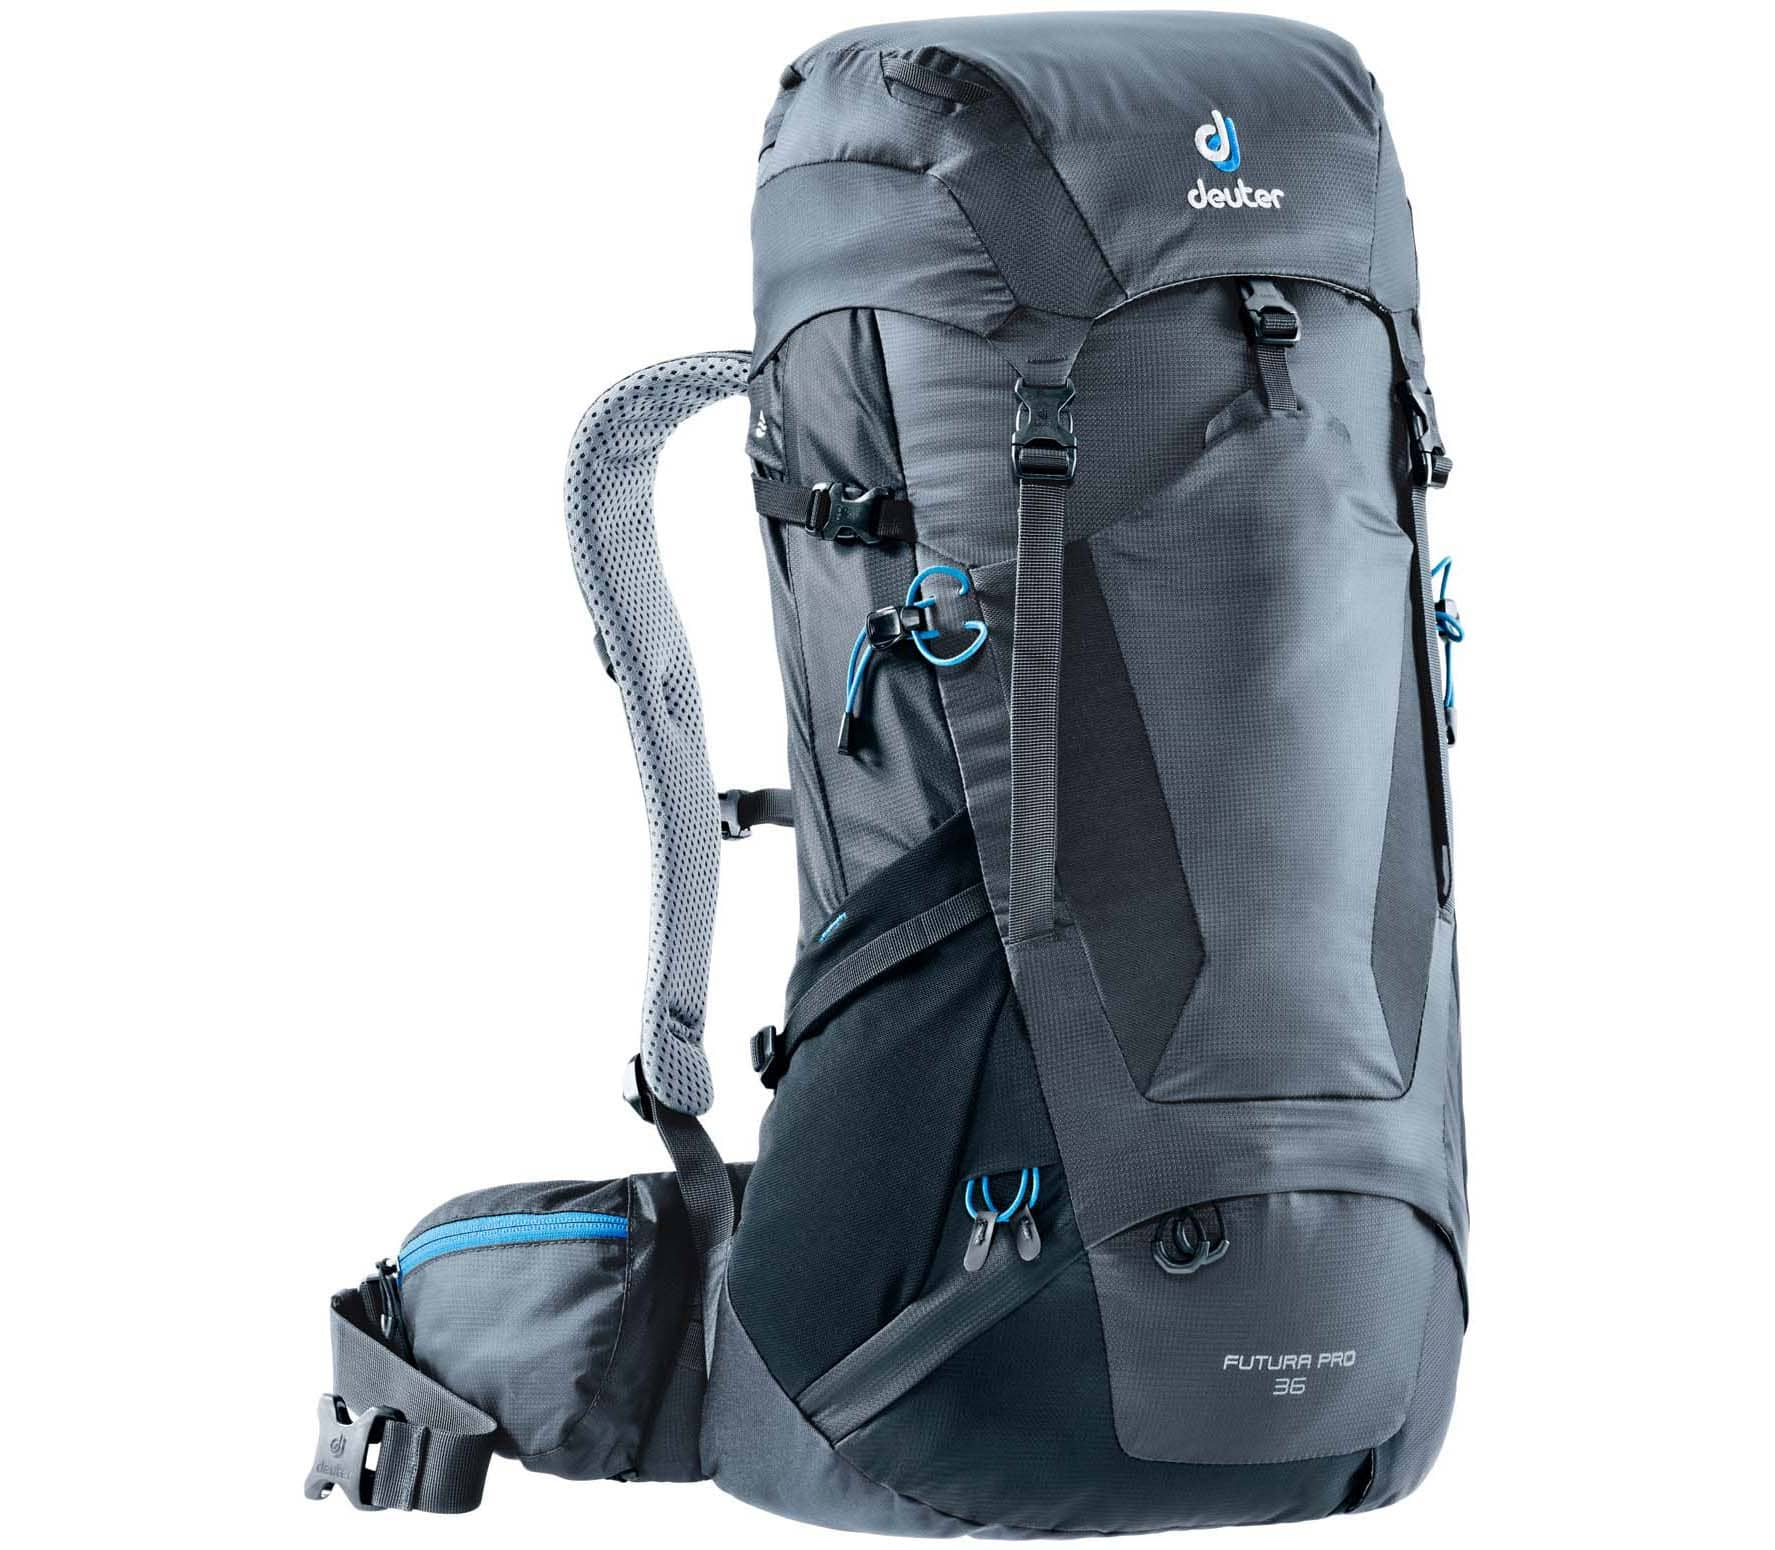 Deuter - Futura PRO 36 hiking backpack (black)